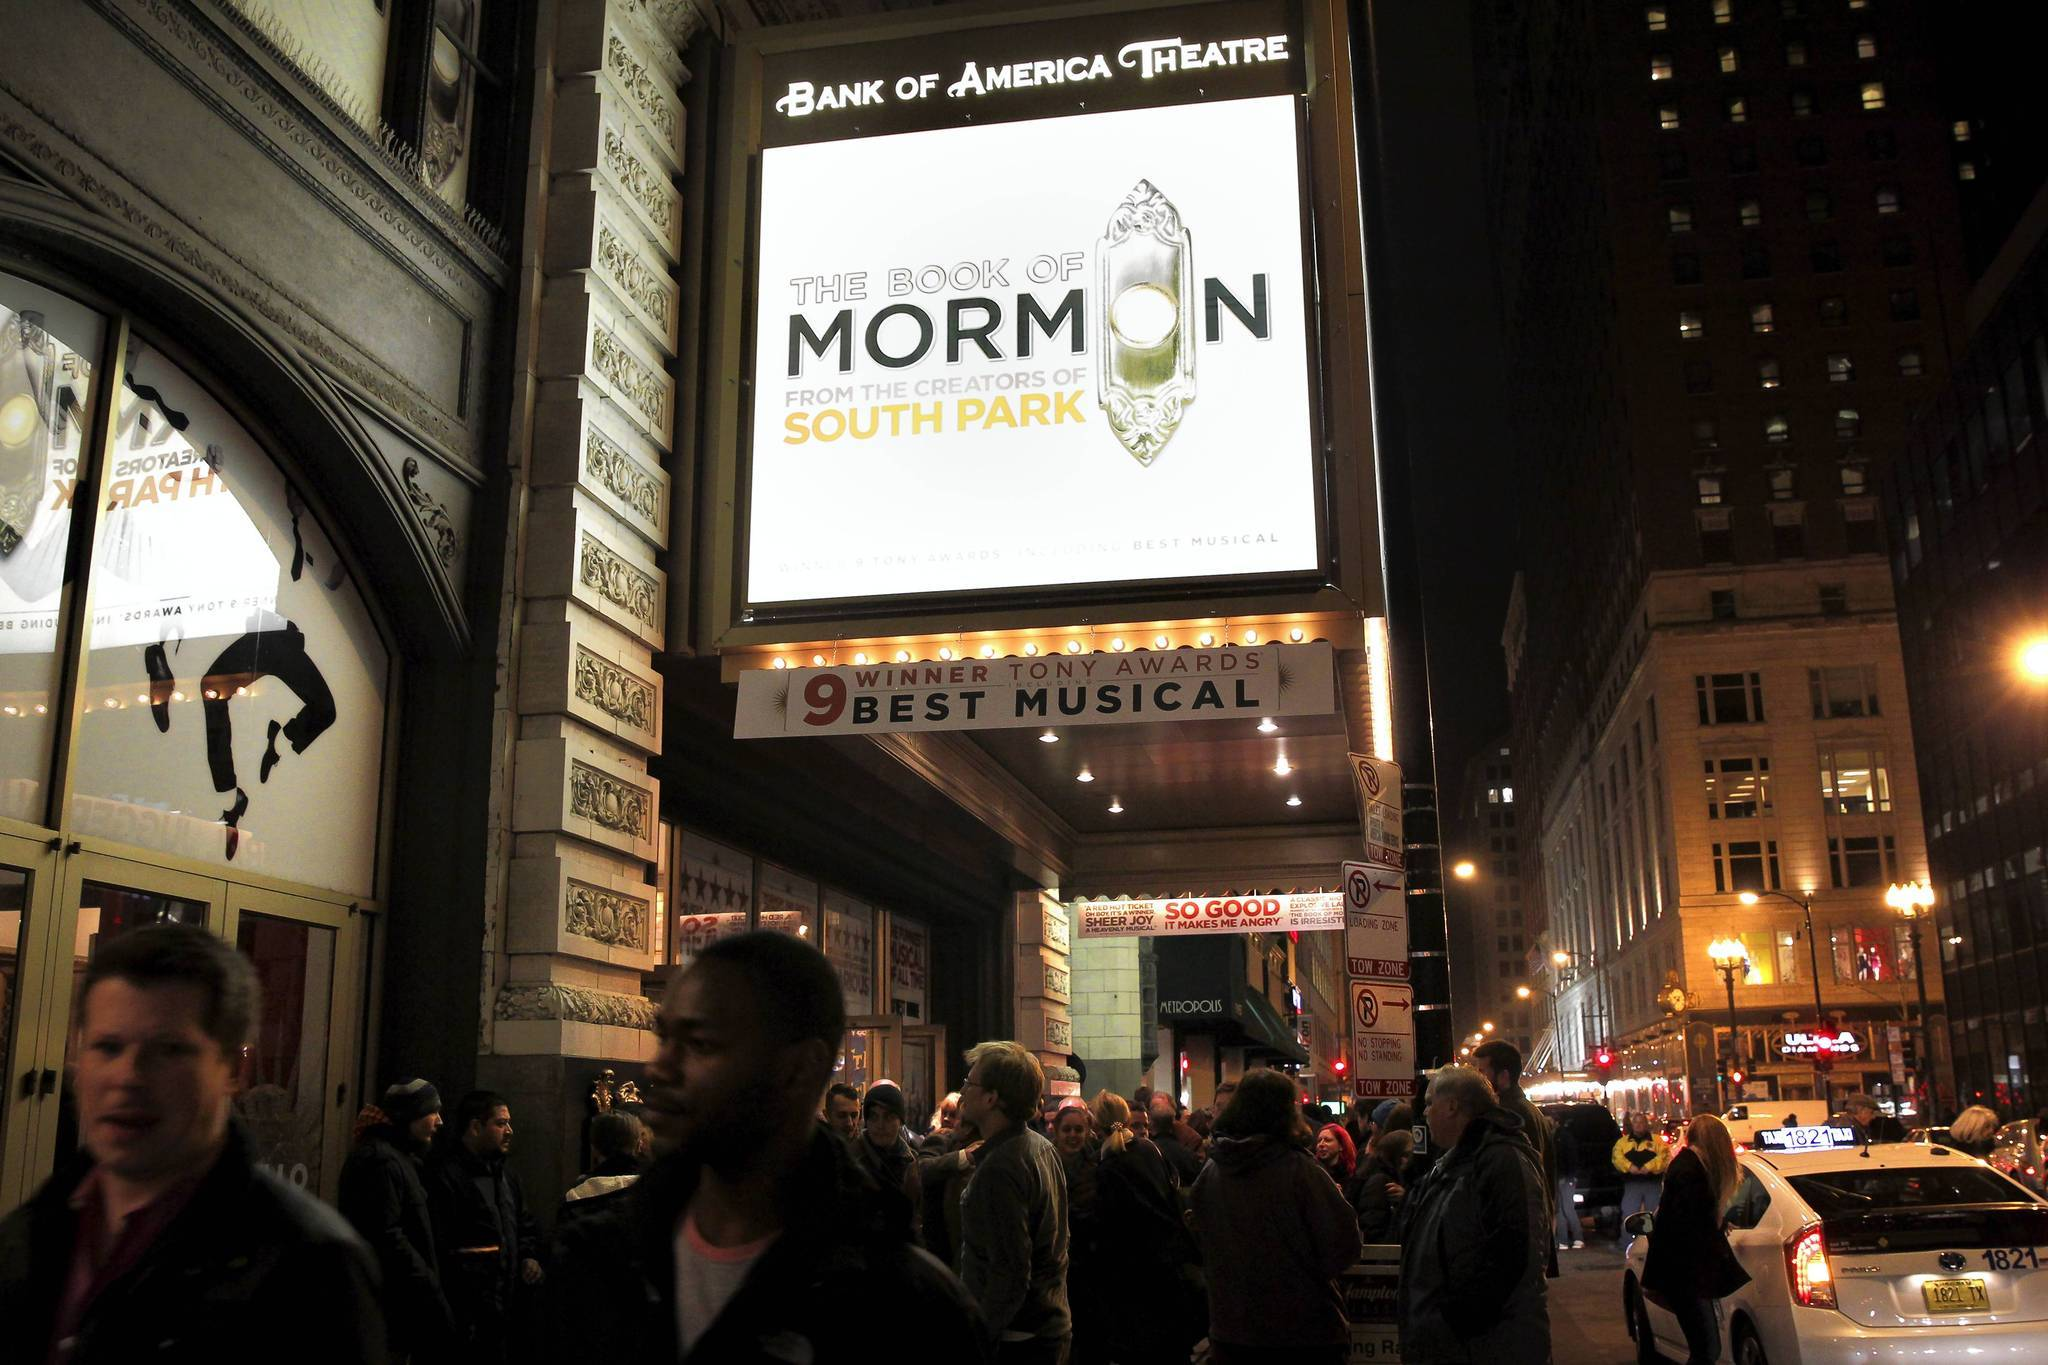 How young is too young to see 'The Book of Mormon'? - Chicago Tribune